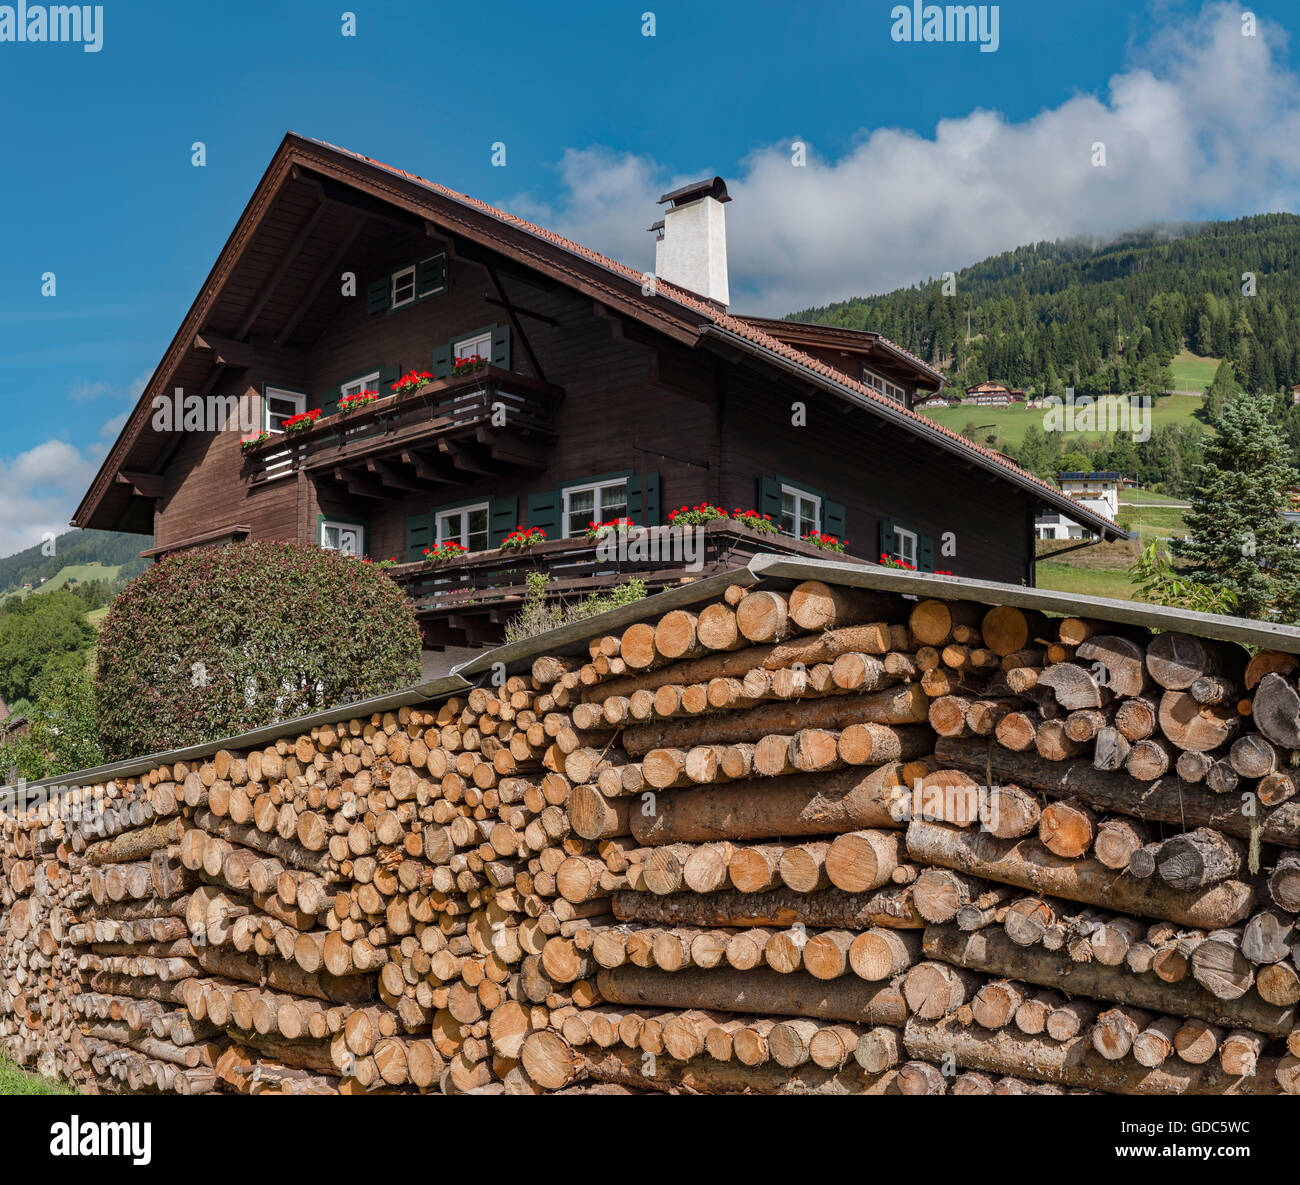 Sillian,Austria,Large stock of wood piled up in front of a house - Stock Image